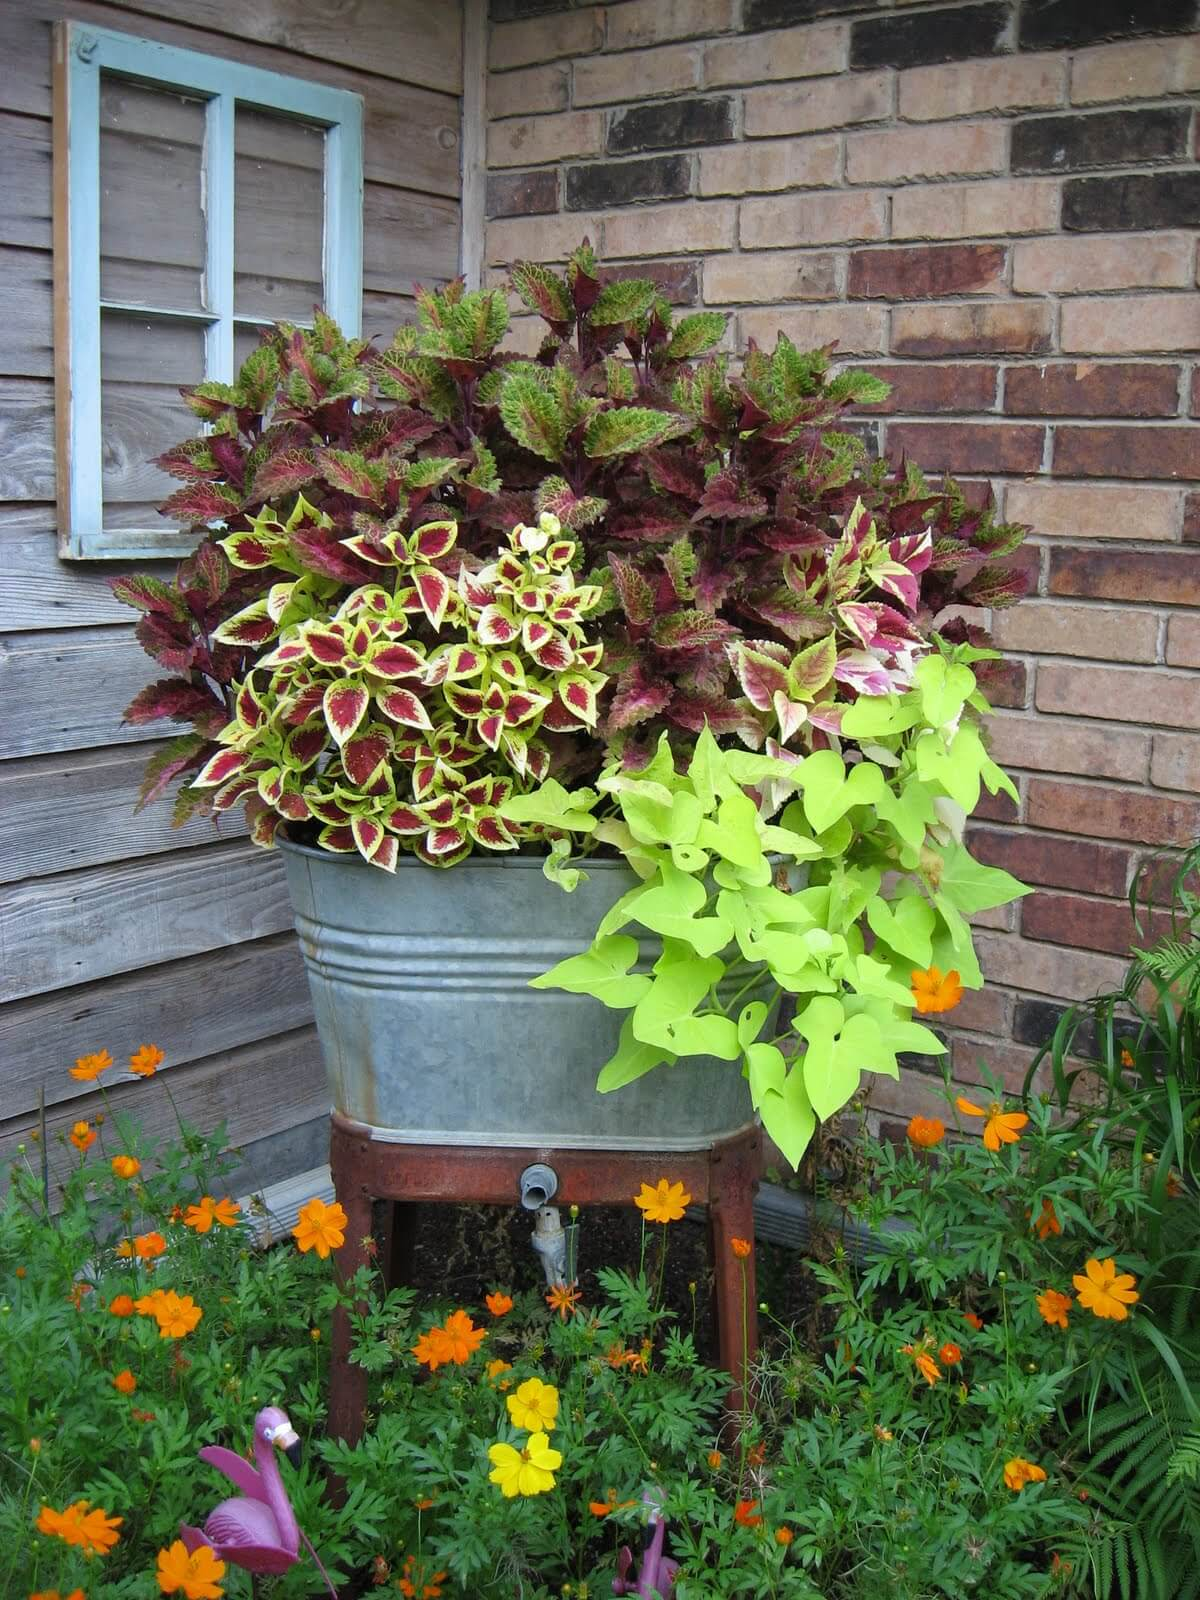 Wash Tub Planter Filled with Plants